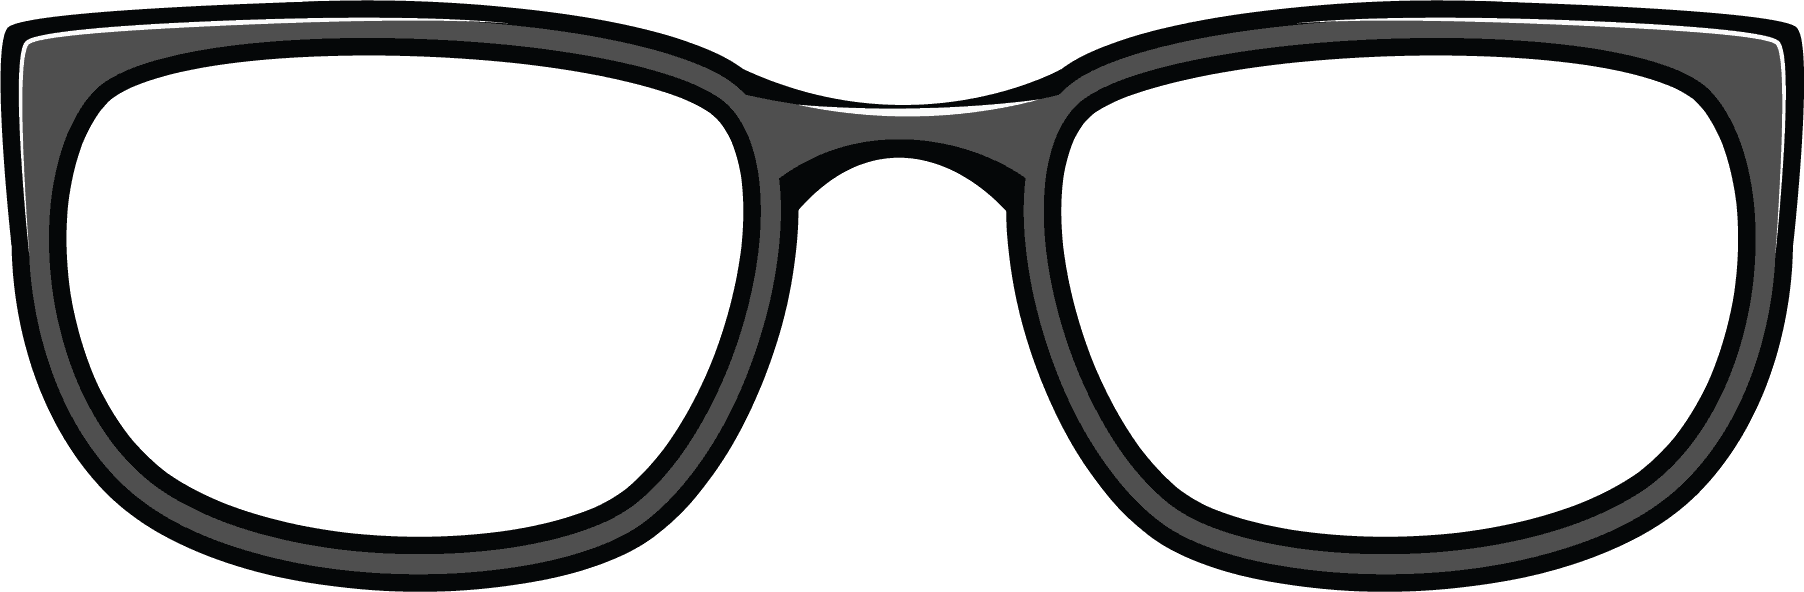 Glasses Clipart Free Clipart Images